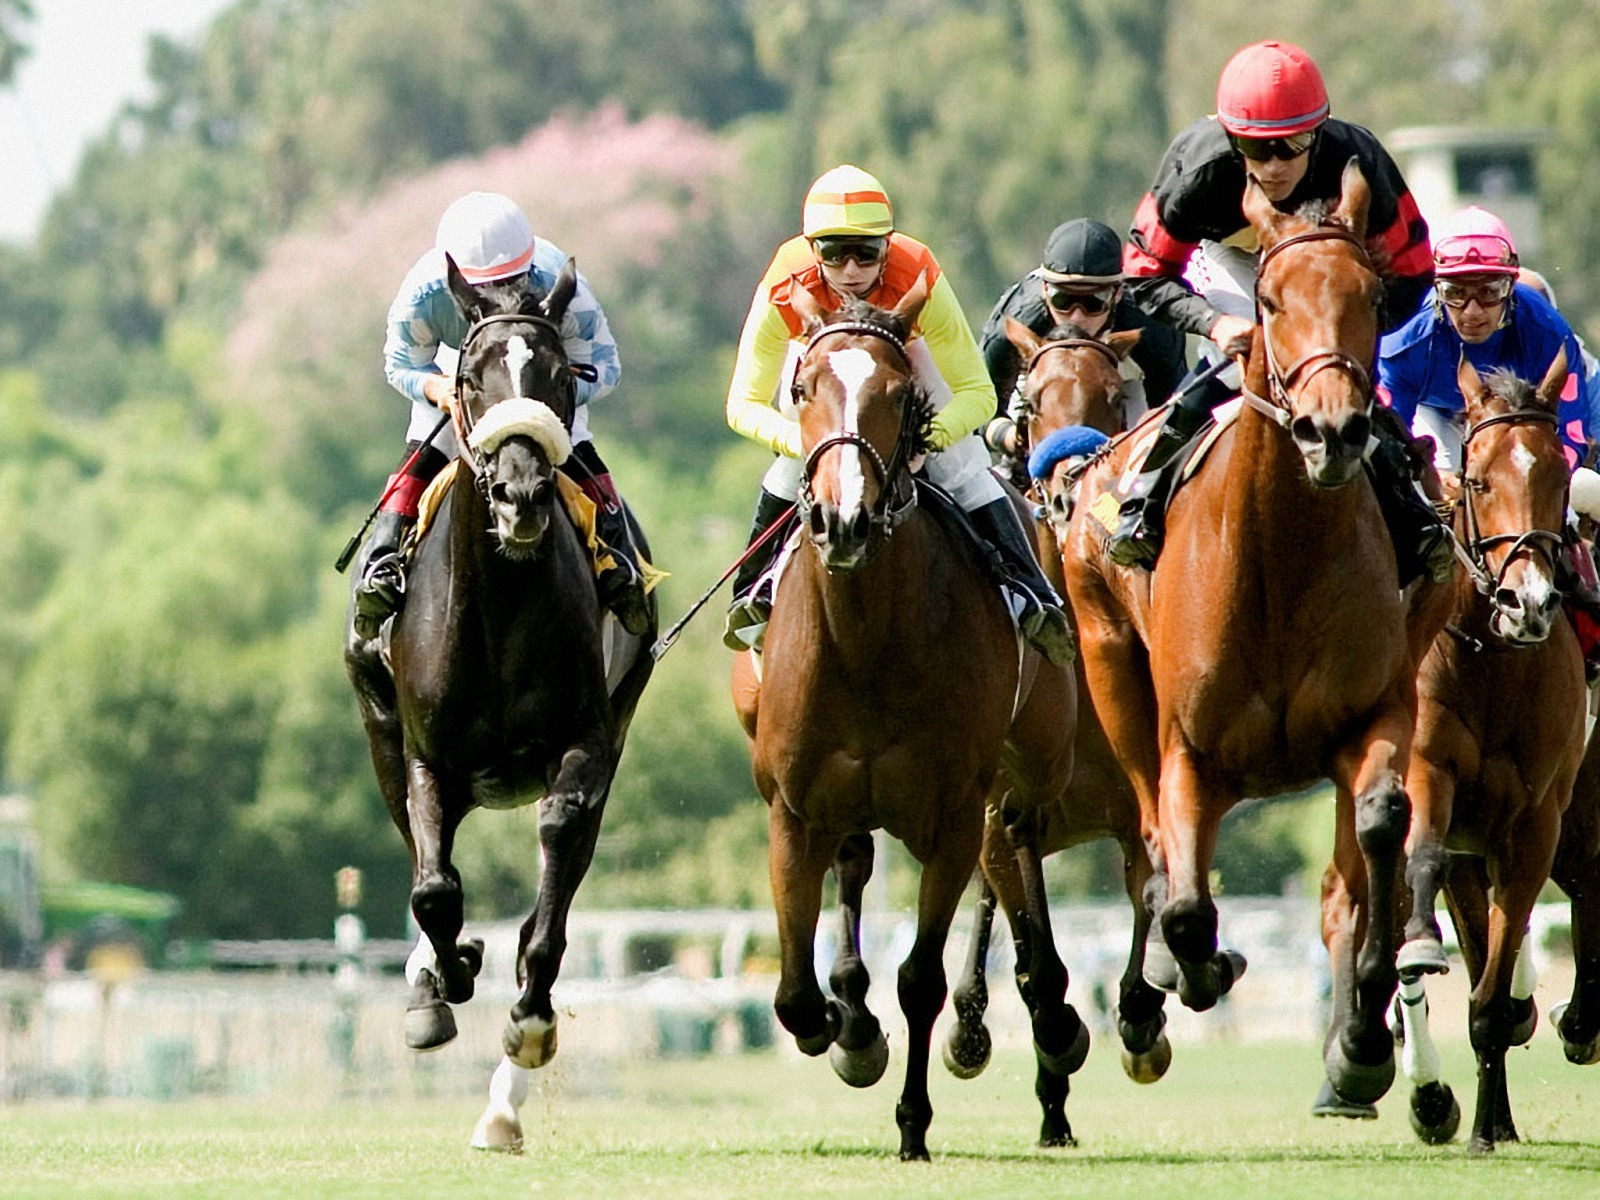 A quick system to help you place bets on horse racing